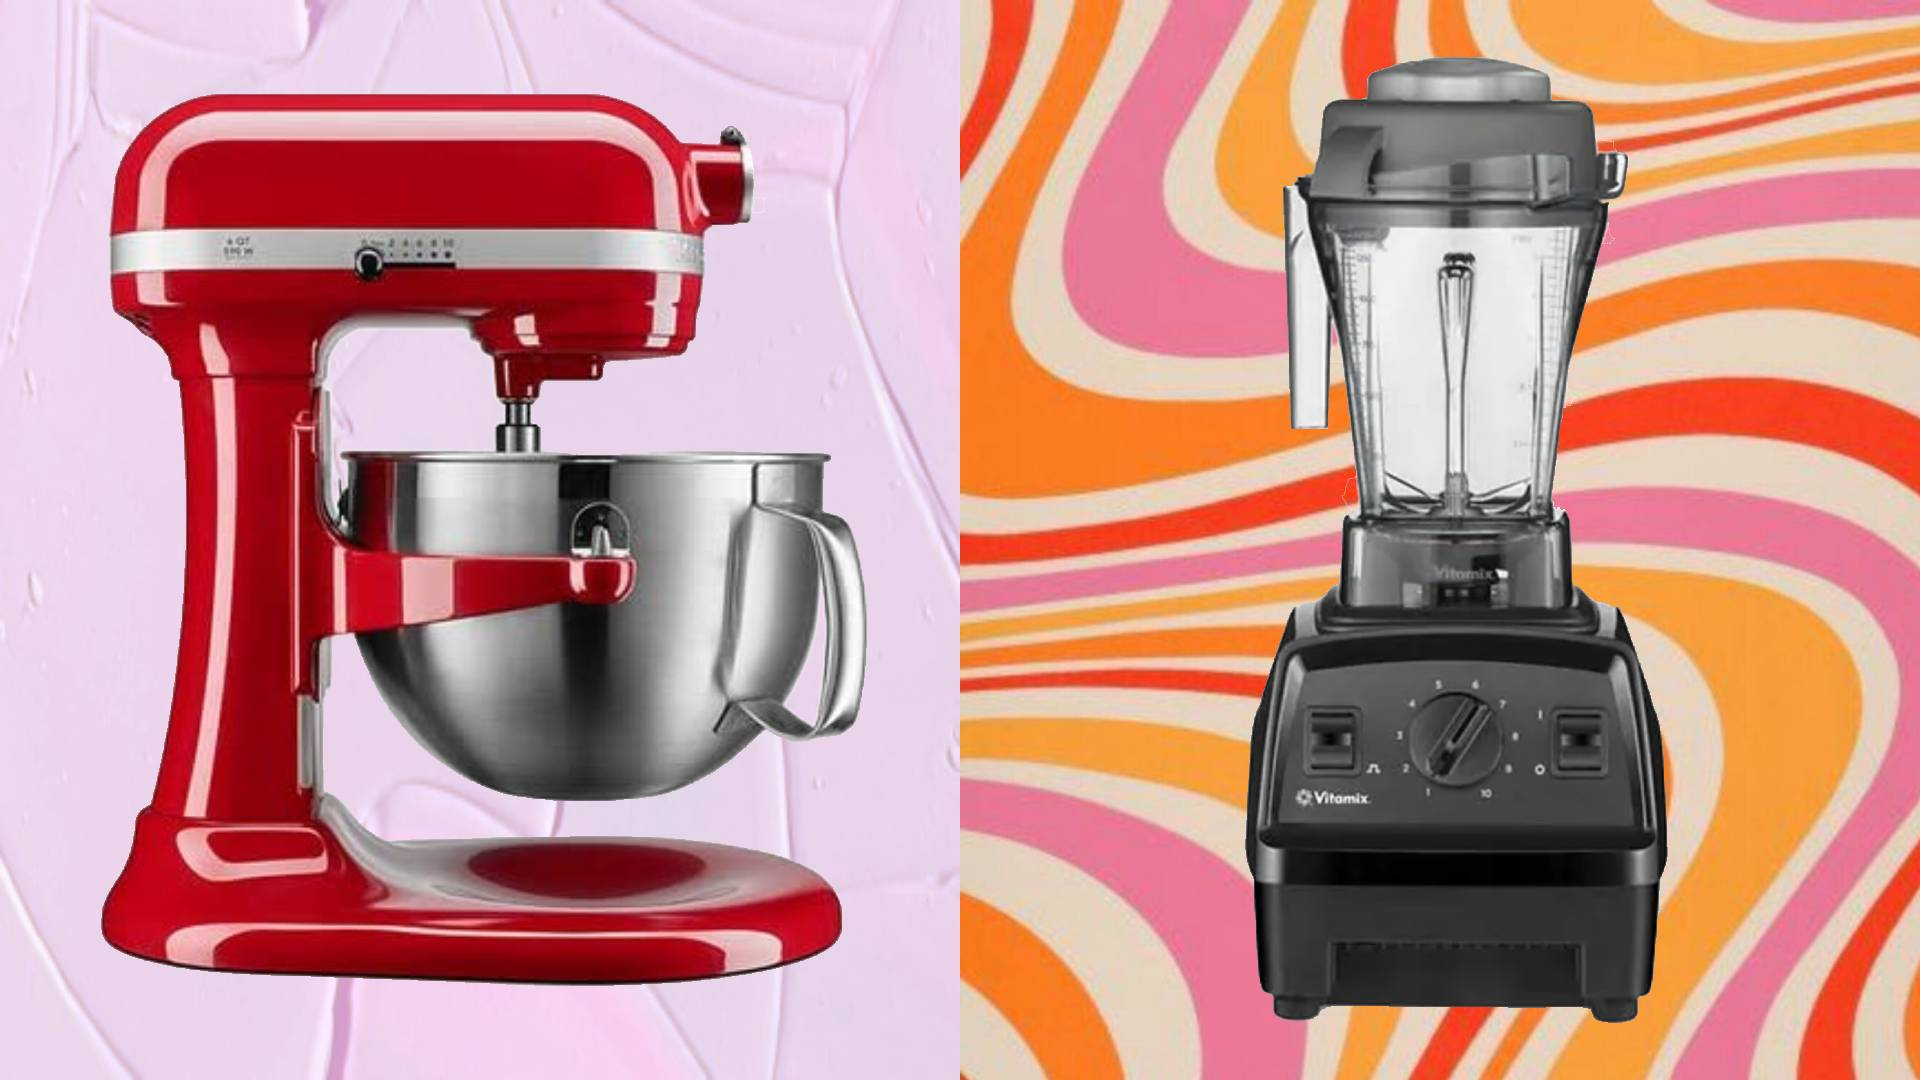 The best Cyber Weekend kitchen deals: Instant Pot, Nespresso, KitchenAid, Cuisinart and more!